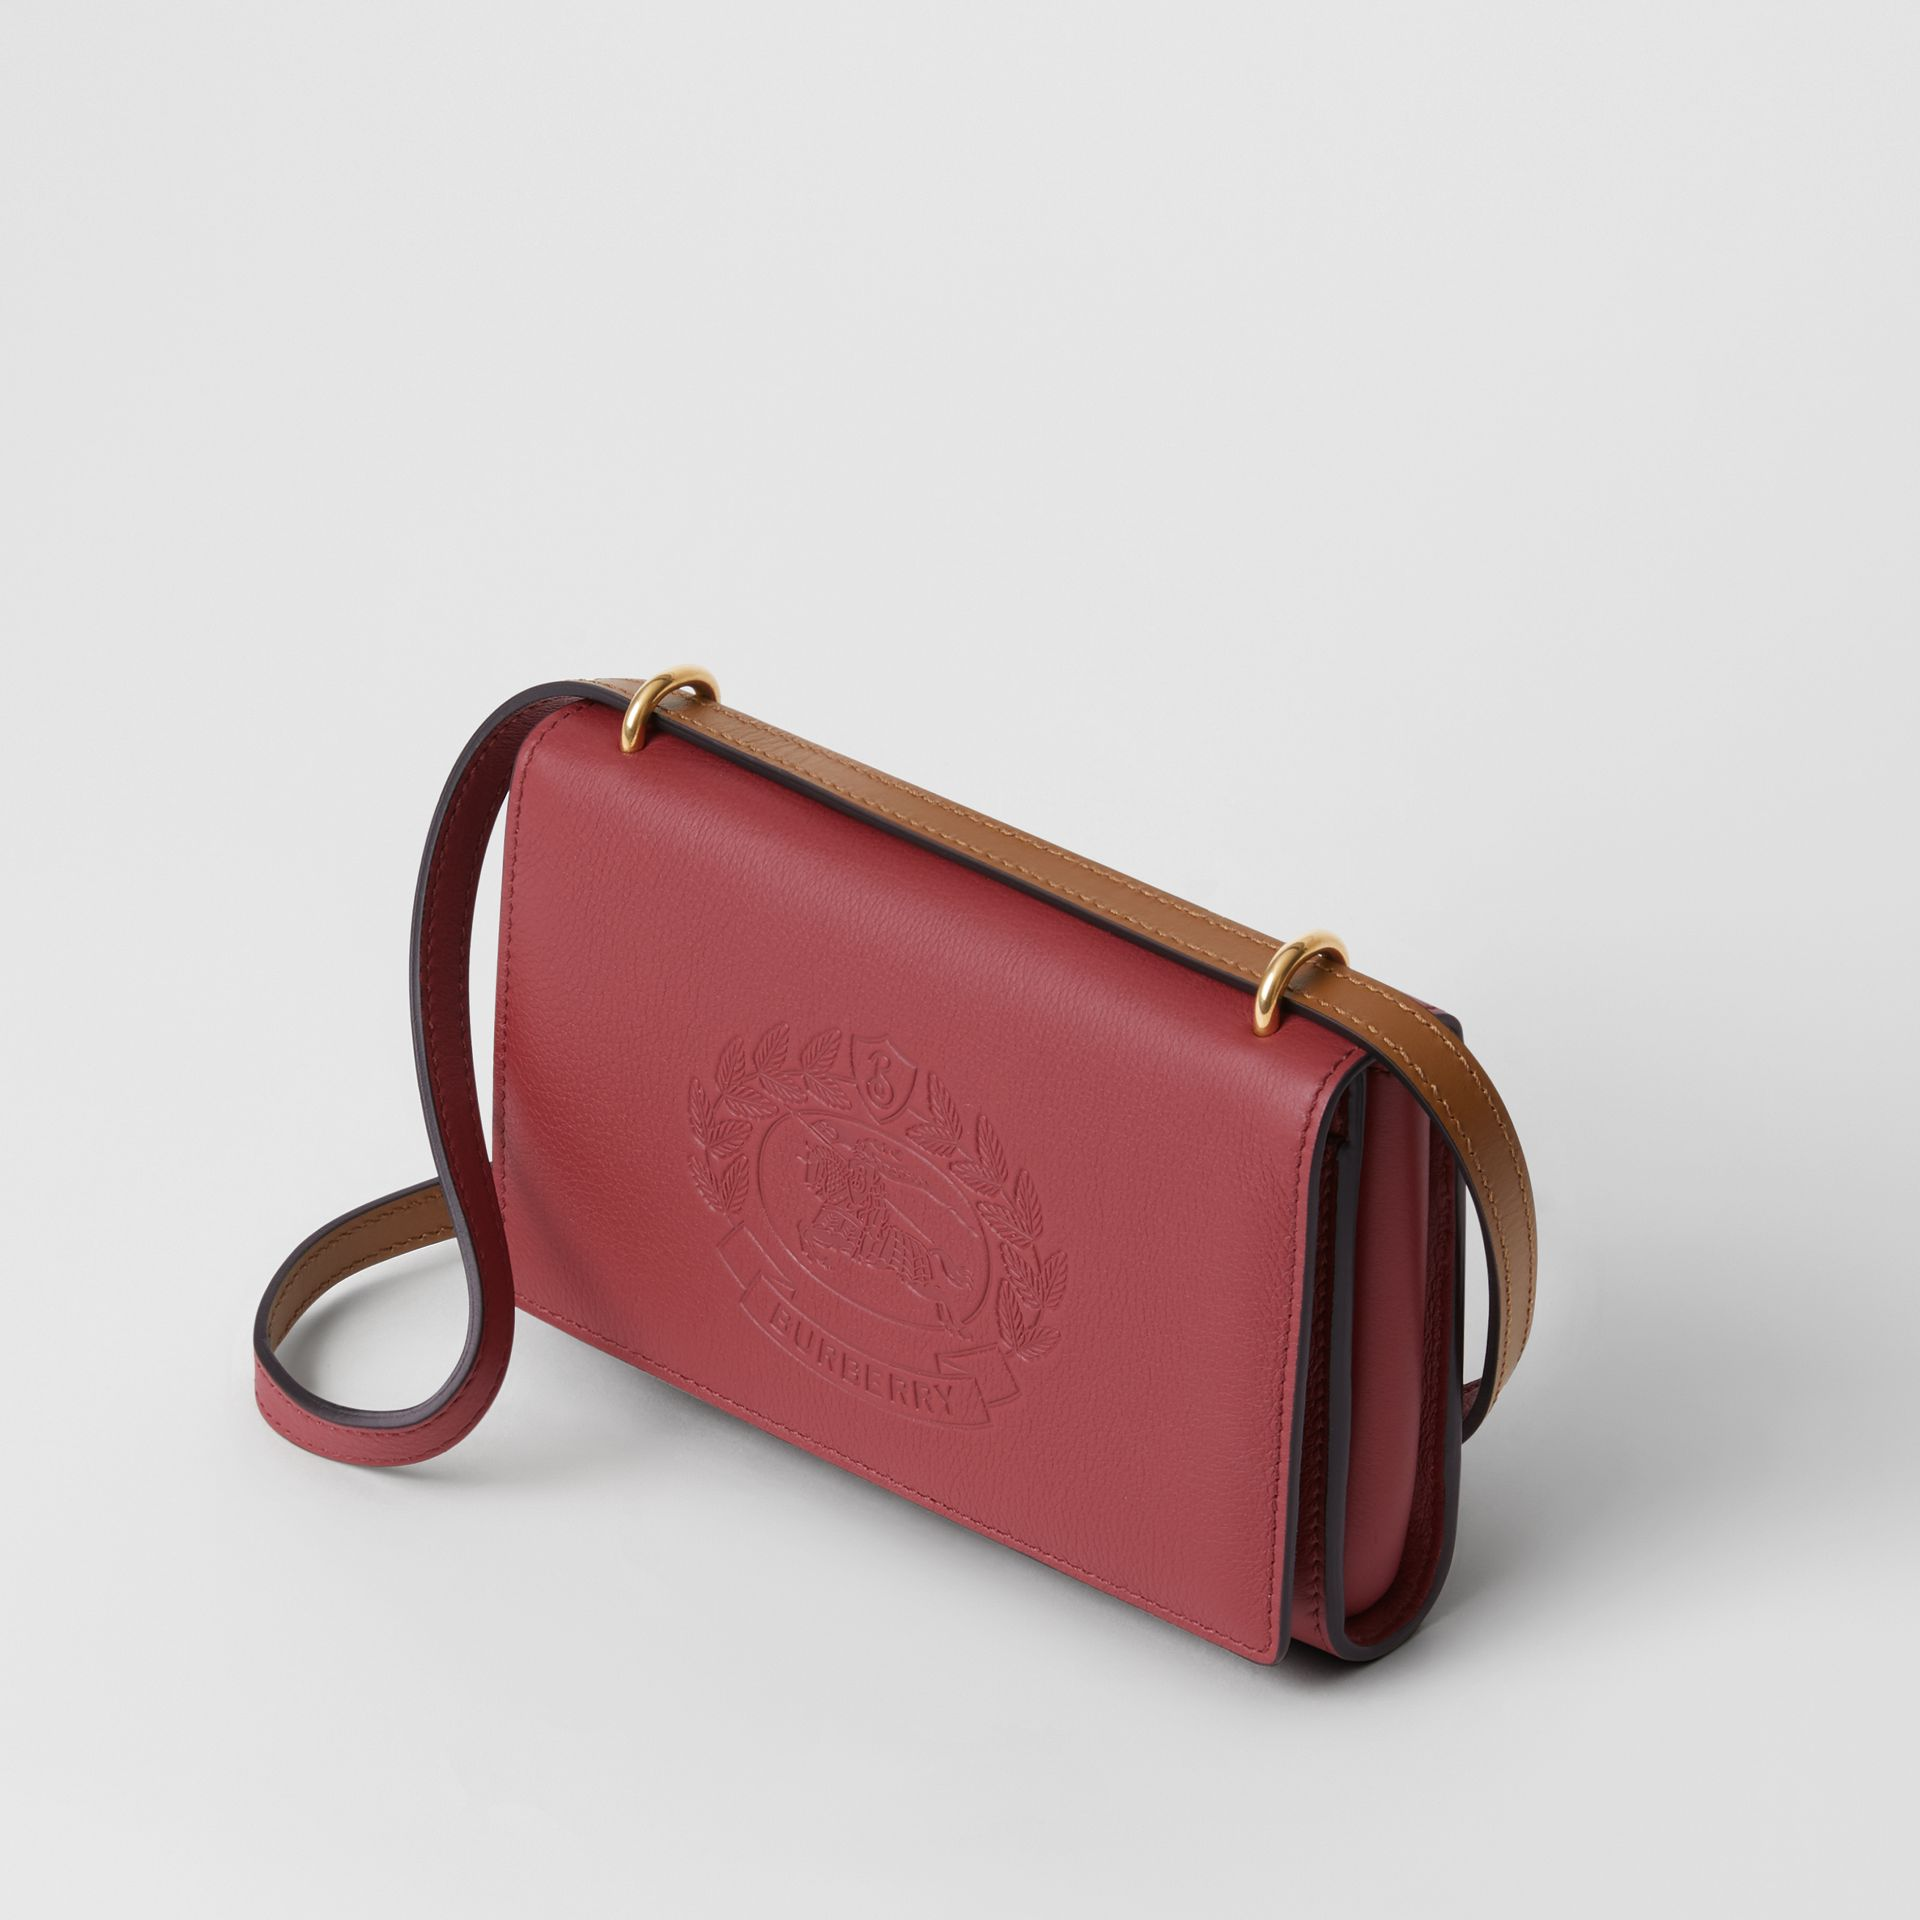 Embossed Crest Leather Wallet with Detachable Strap in Crimson - Women | Burberry Australia - gallery image 4